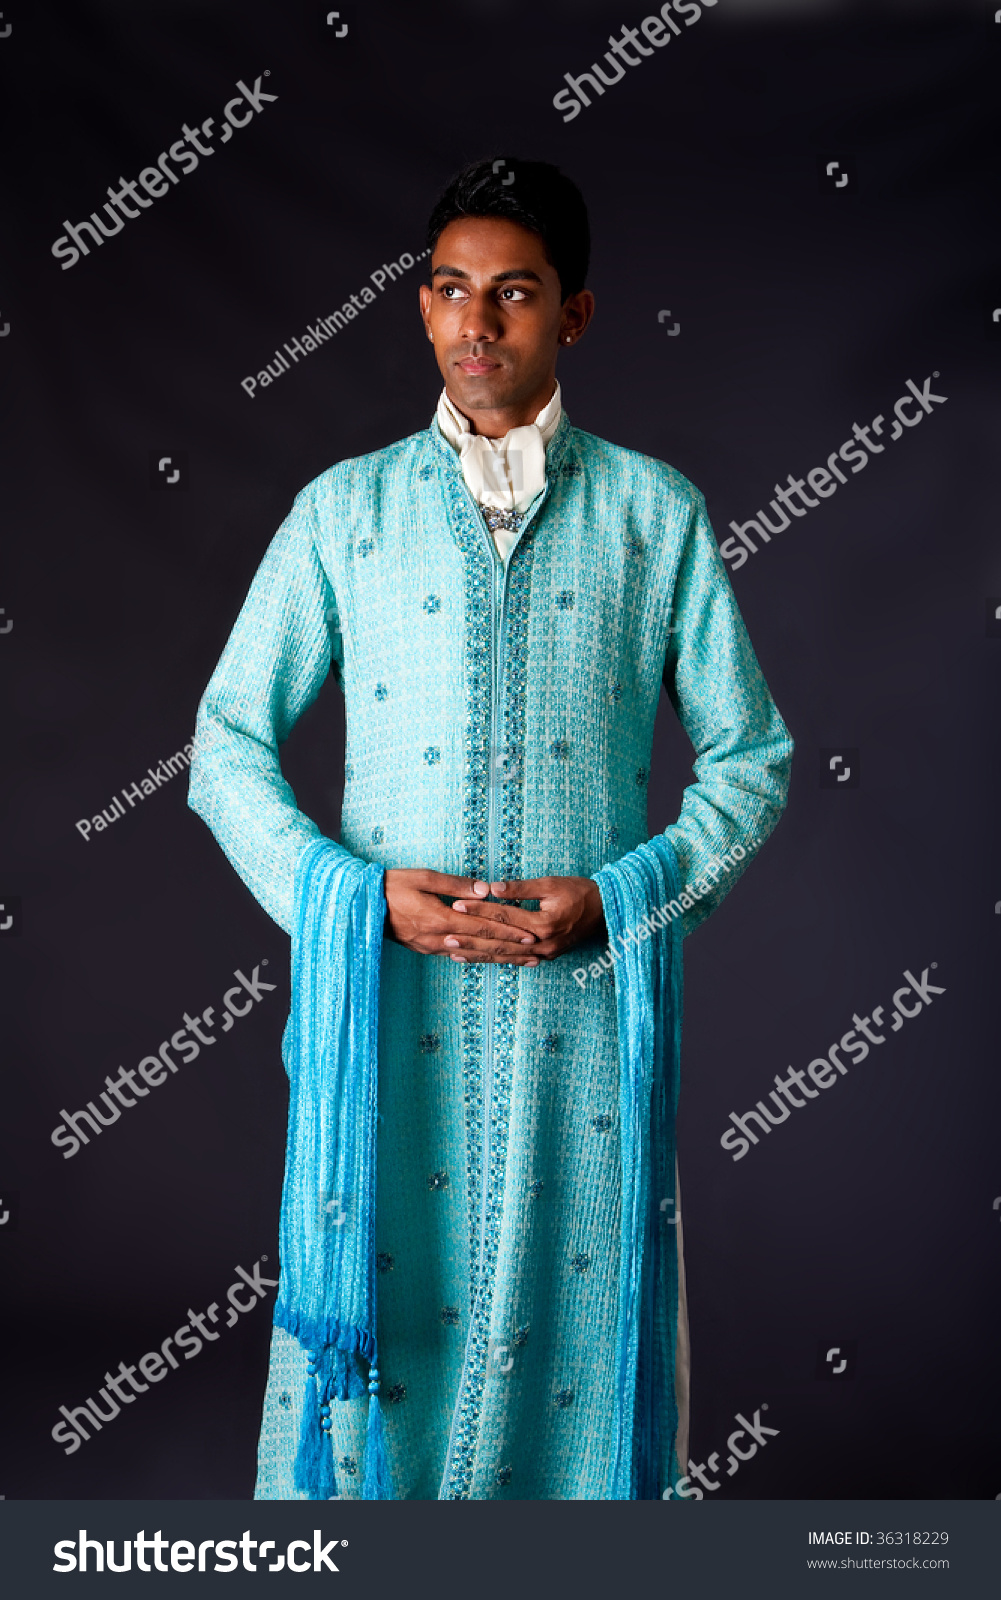 Beautiful Authentic Indian Hindu Man Typical Stock Photo (100% Legal ...